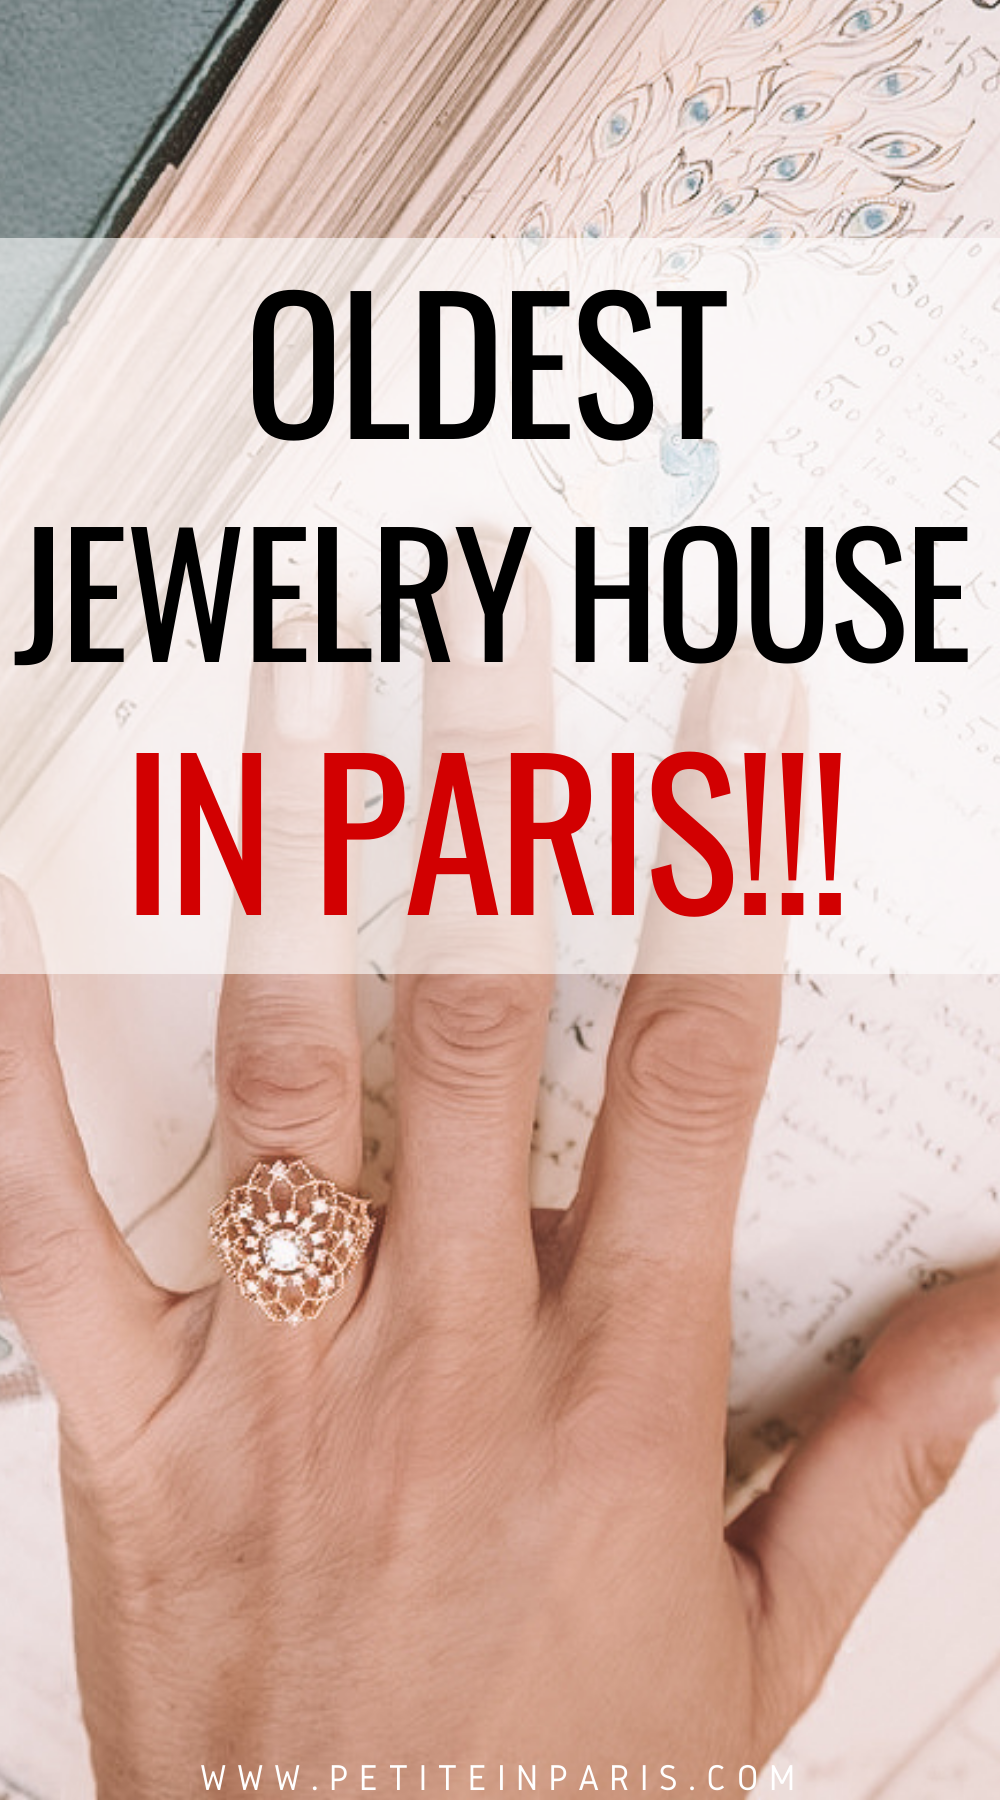 Discover the oldest Jewelry House in Paris